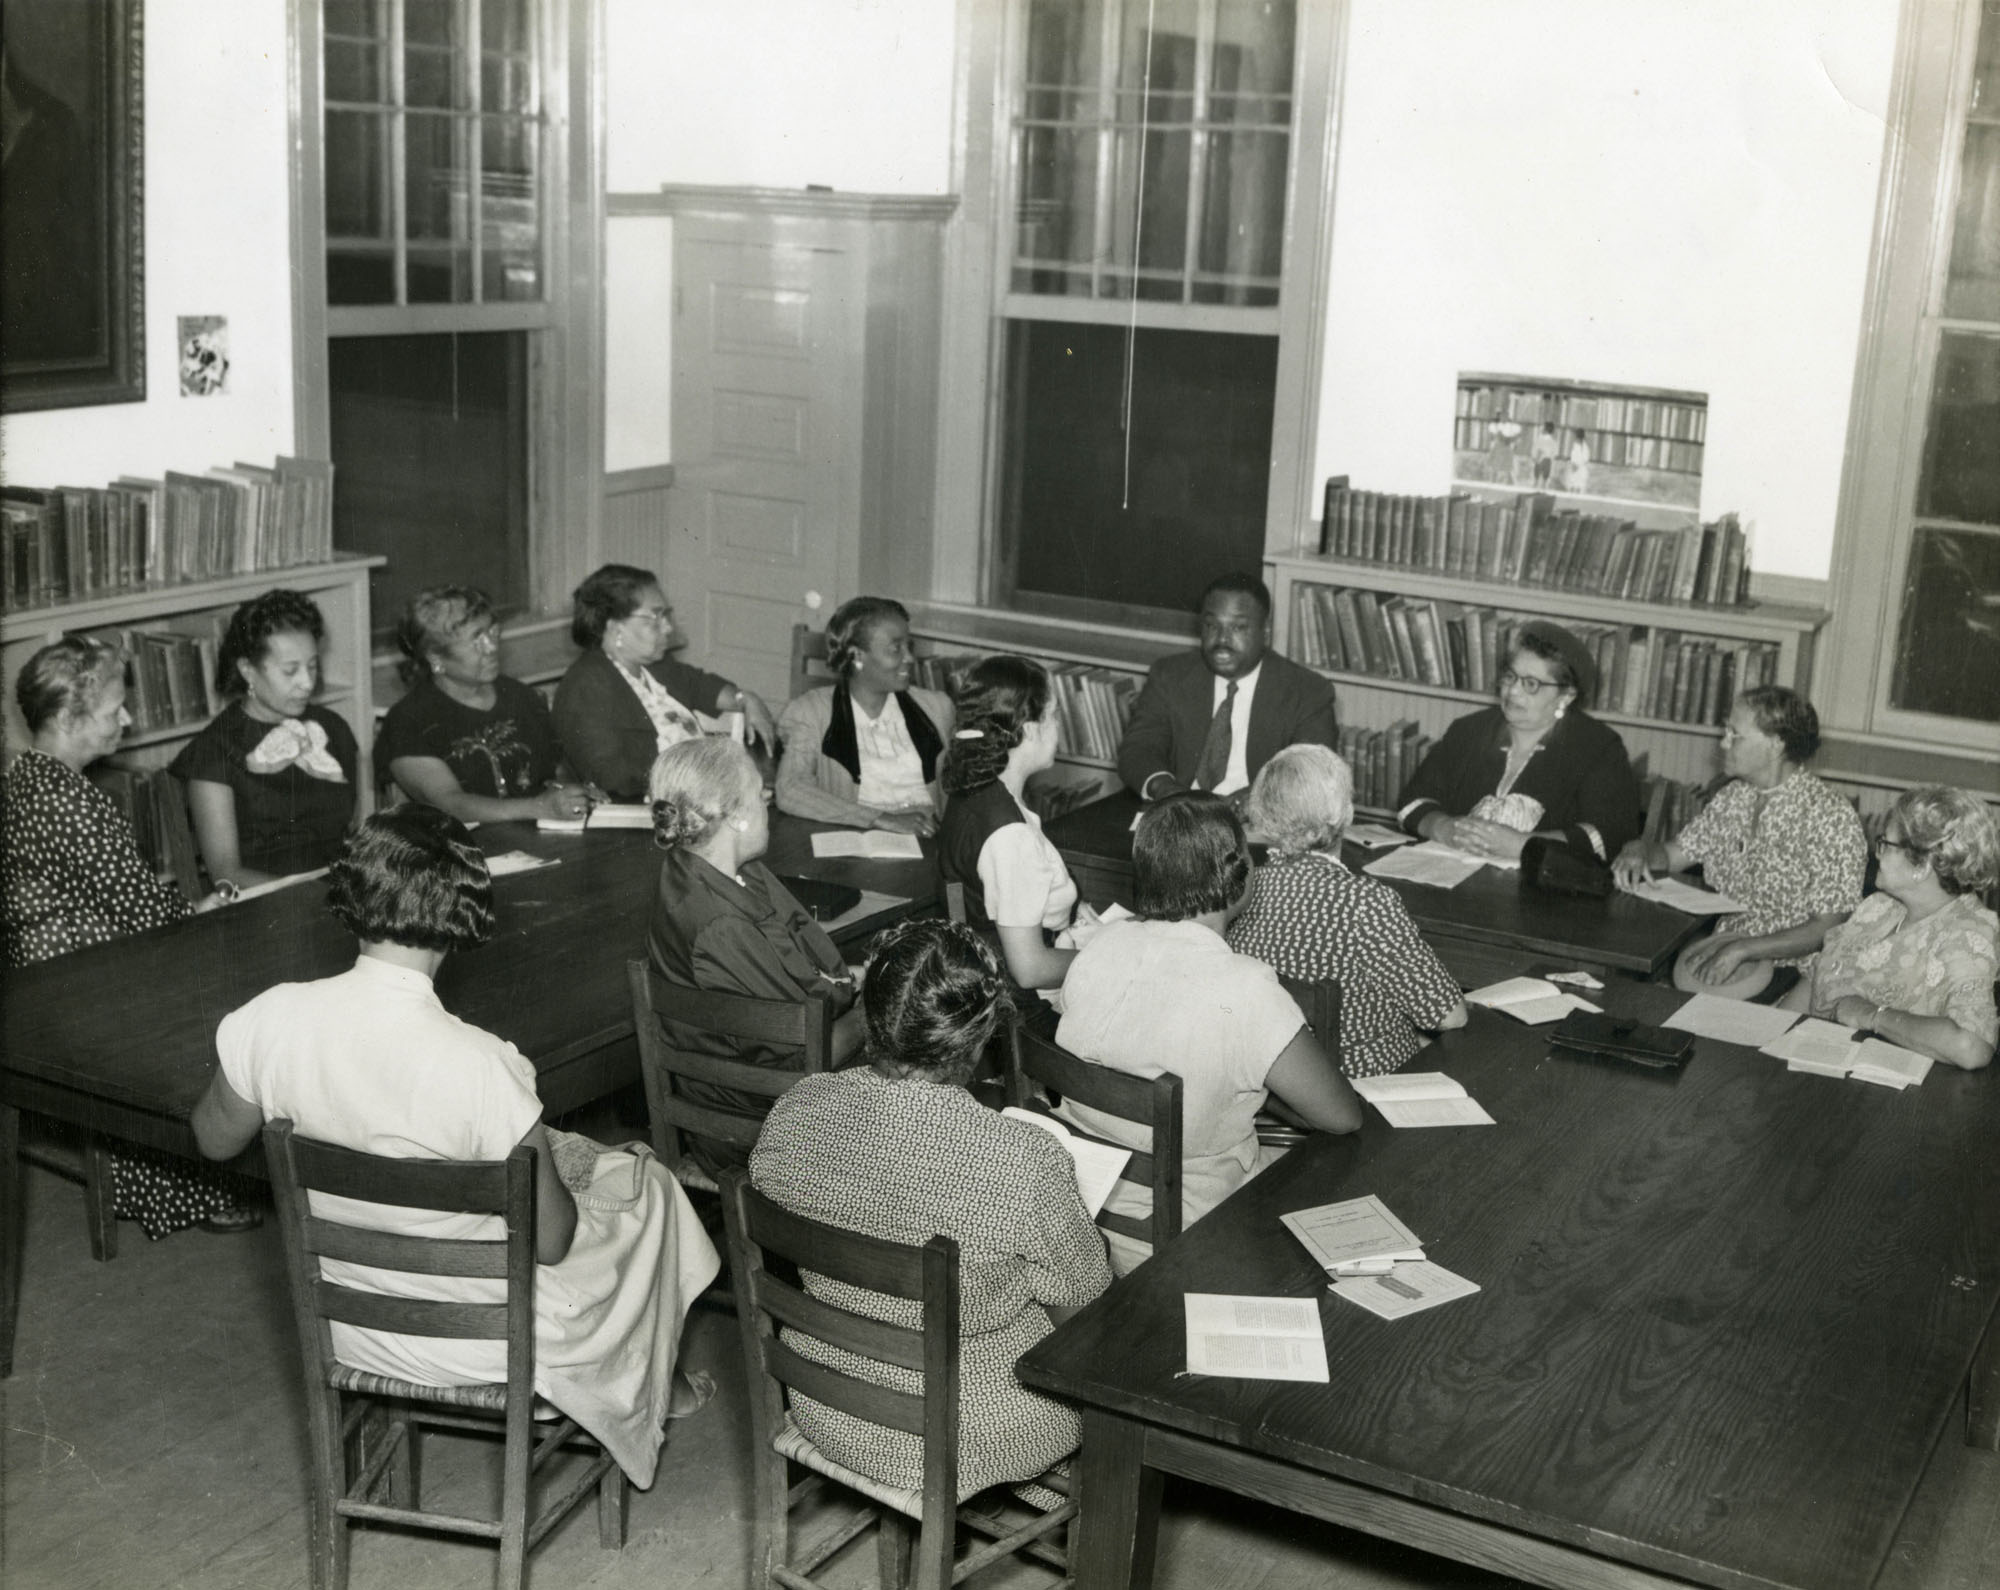 Book discussion at Dart Hall Branch Library, 1952 (1)